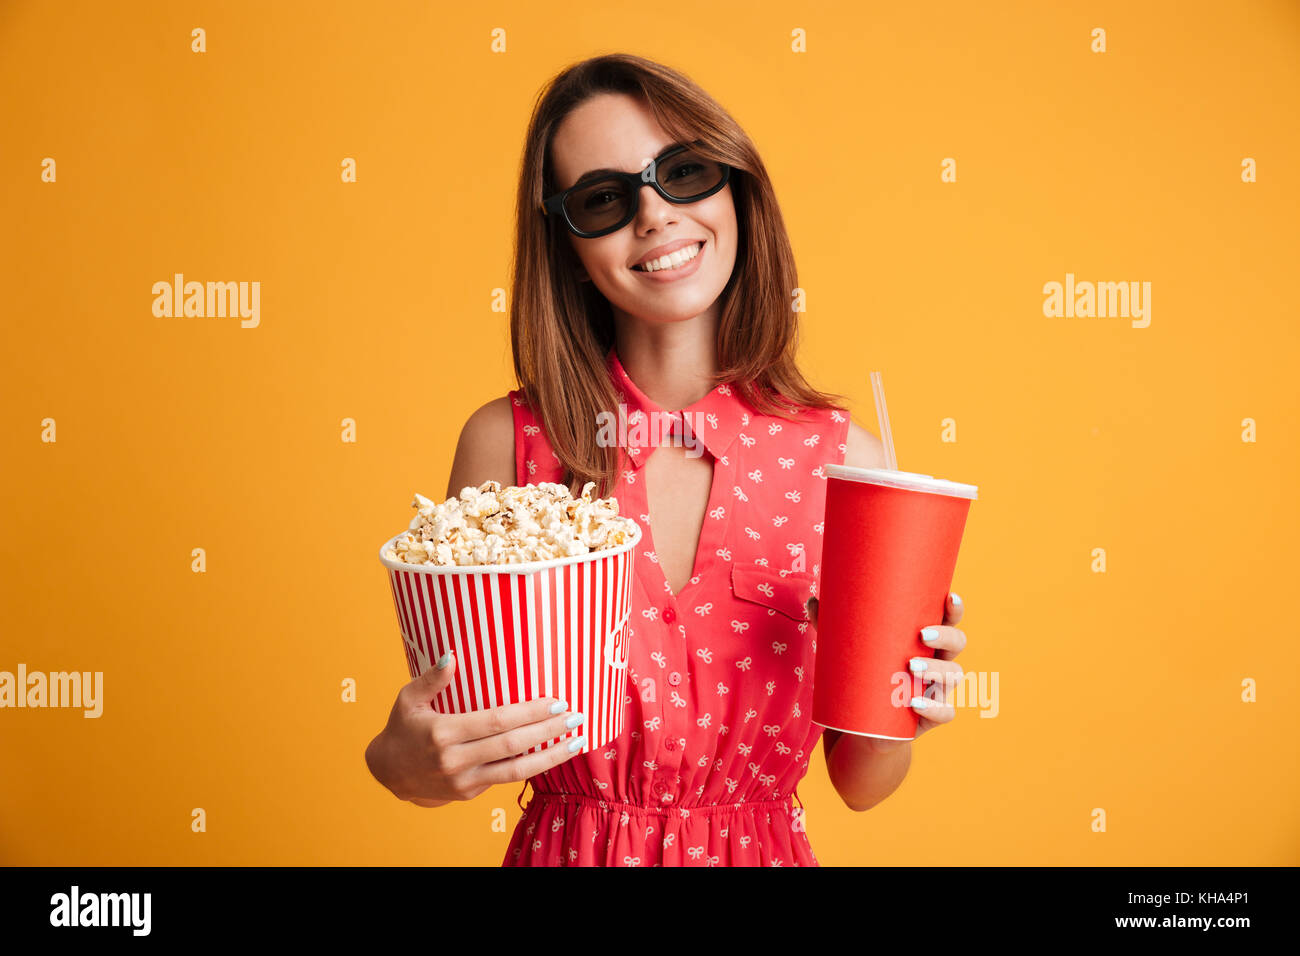 Pleased brunette woman in dress and eyeglasses preparing to watch the film while holding popcorn and soda over yellow background Stock Photo